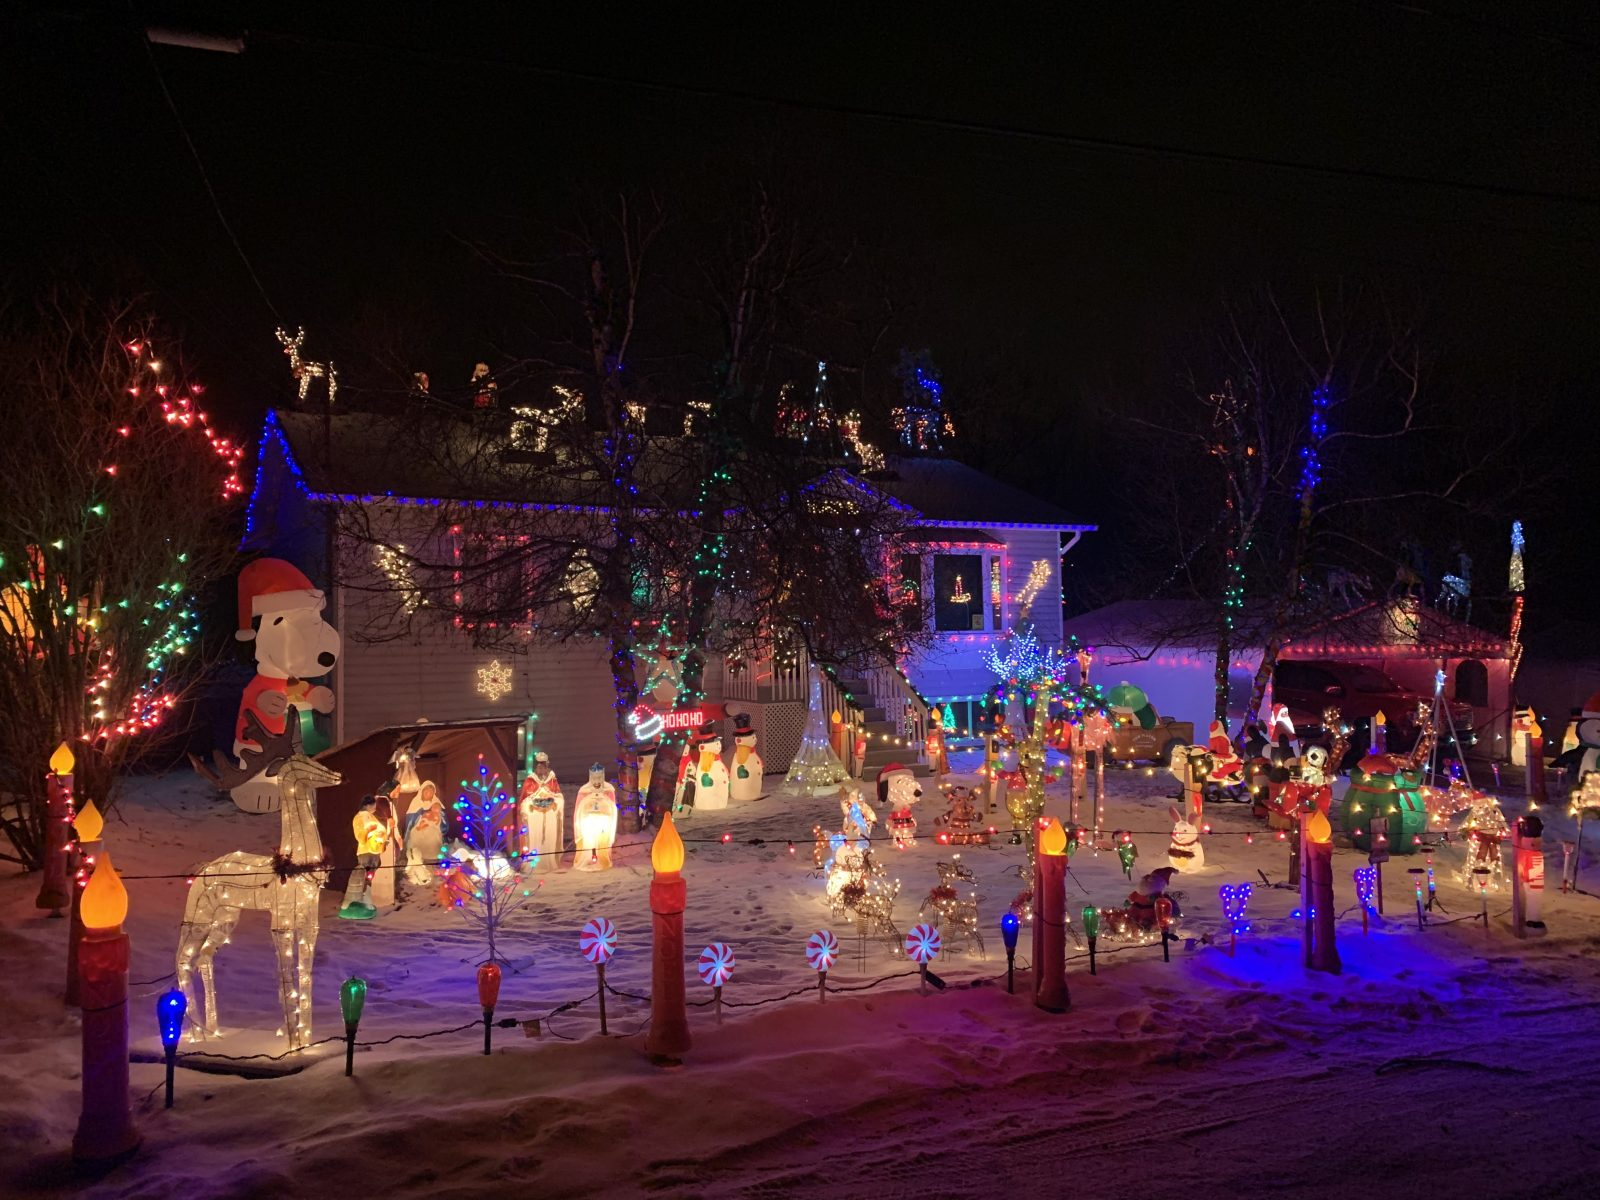 Friday File- Destination Sherbrooke in the holiday spirit